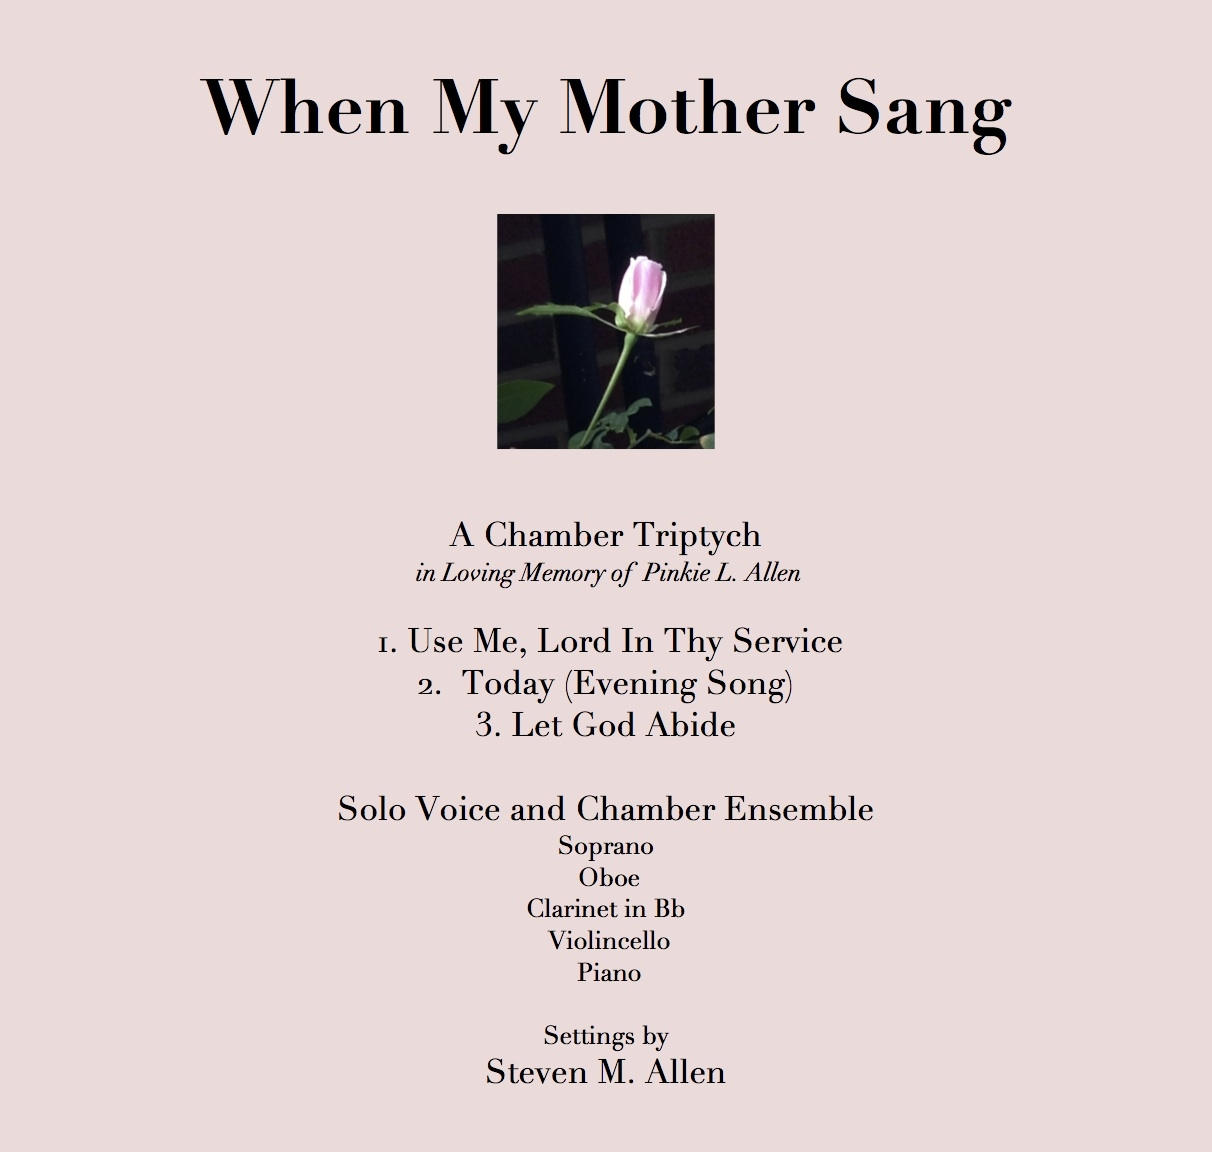 When My Mother Sang - A Chamber Triptych.jpg